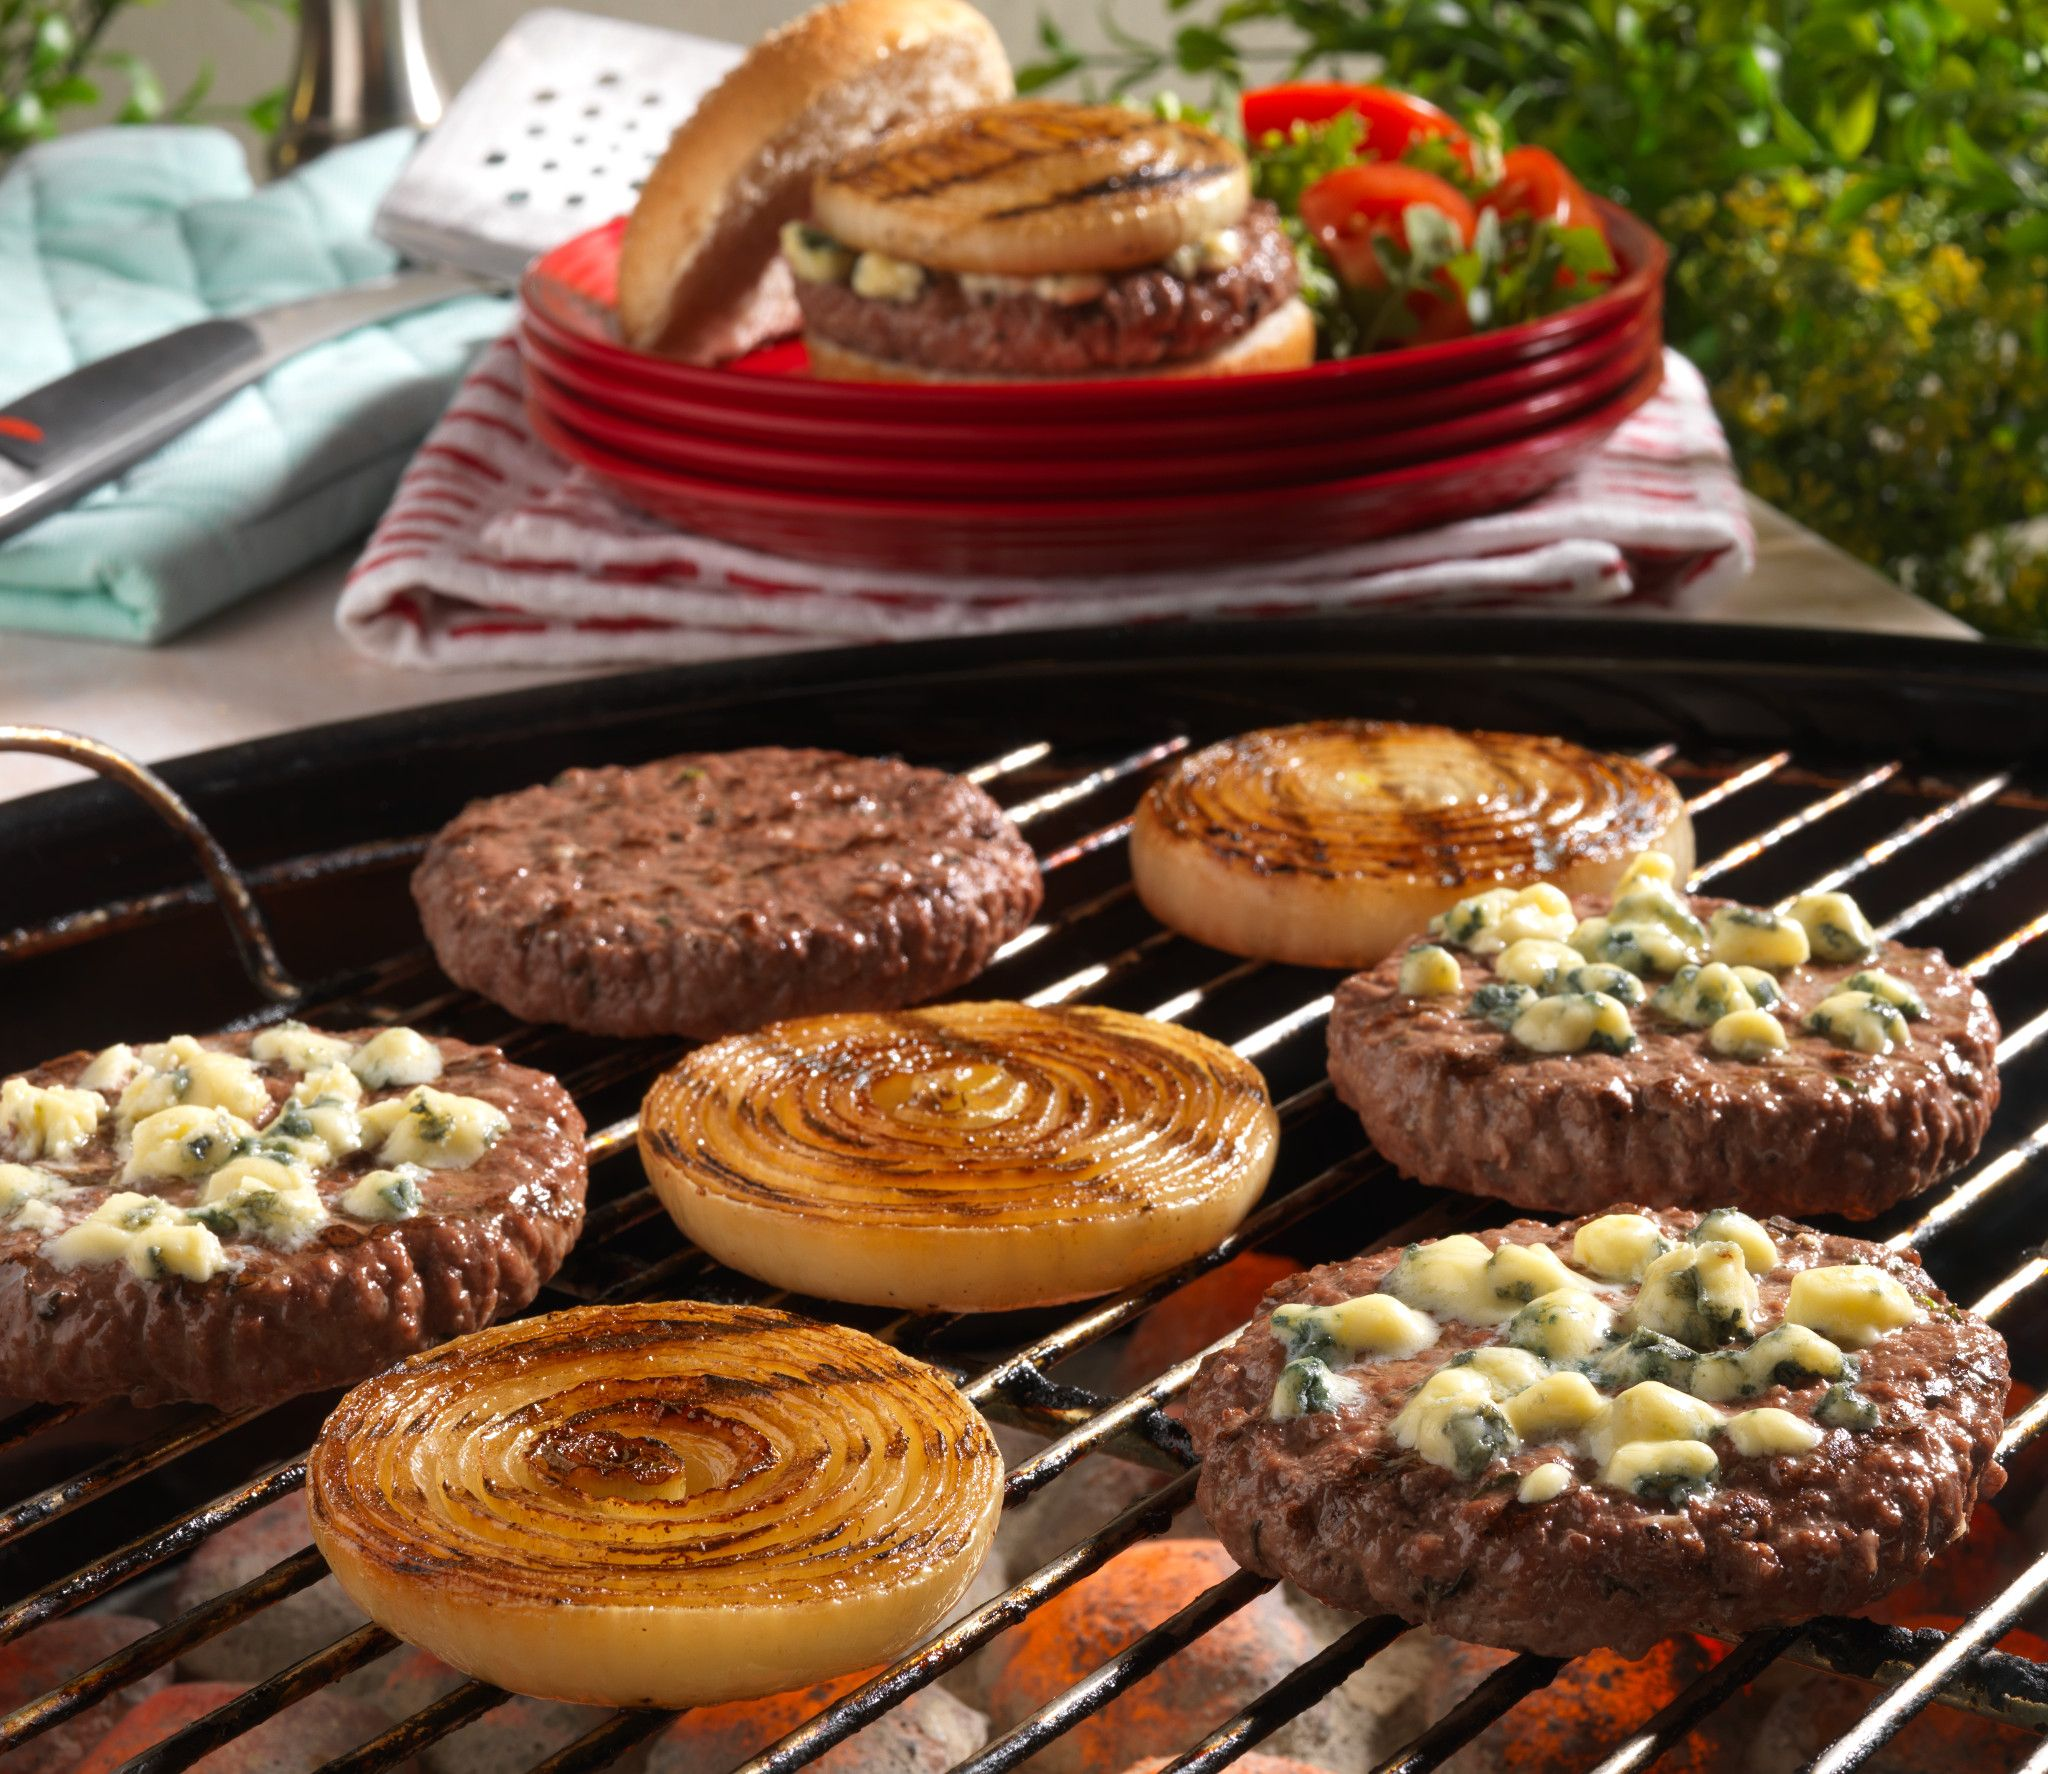 Grilled Onion Cheeseburgers